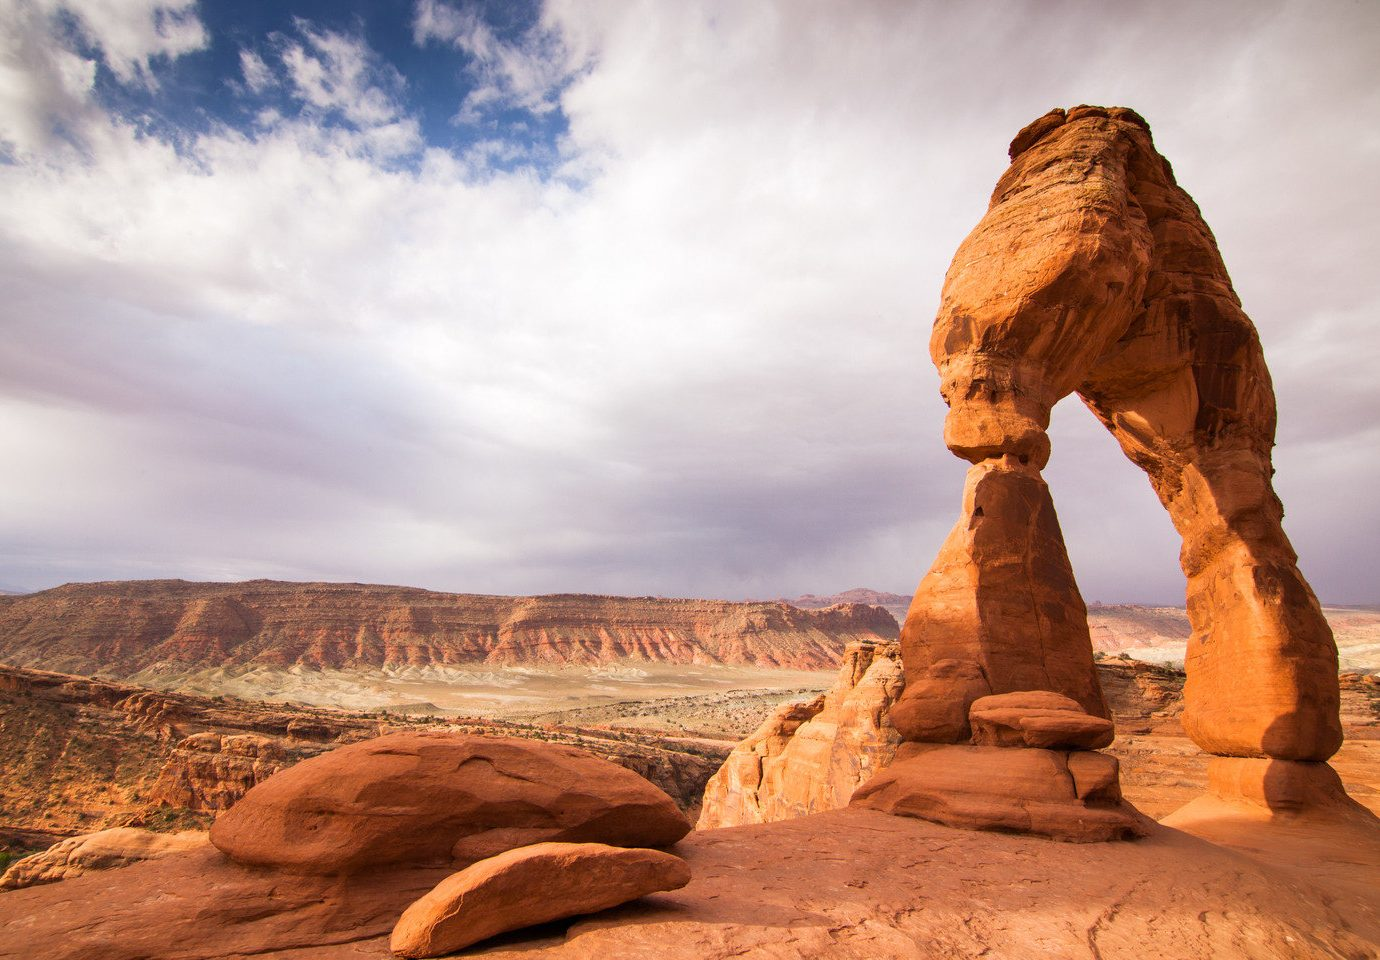 National Parks Outdoors + Adventure Trip Ideas Nature outdoor sky mountain valley canyon rock landform natural environment wilderness arch badlands Desert landscape wadi ancient history geology butte sand temple aeolian landform formation monument material sculpture stone